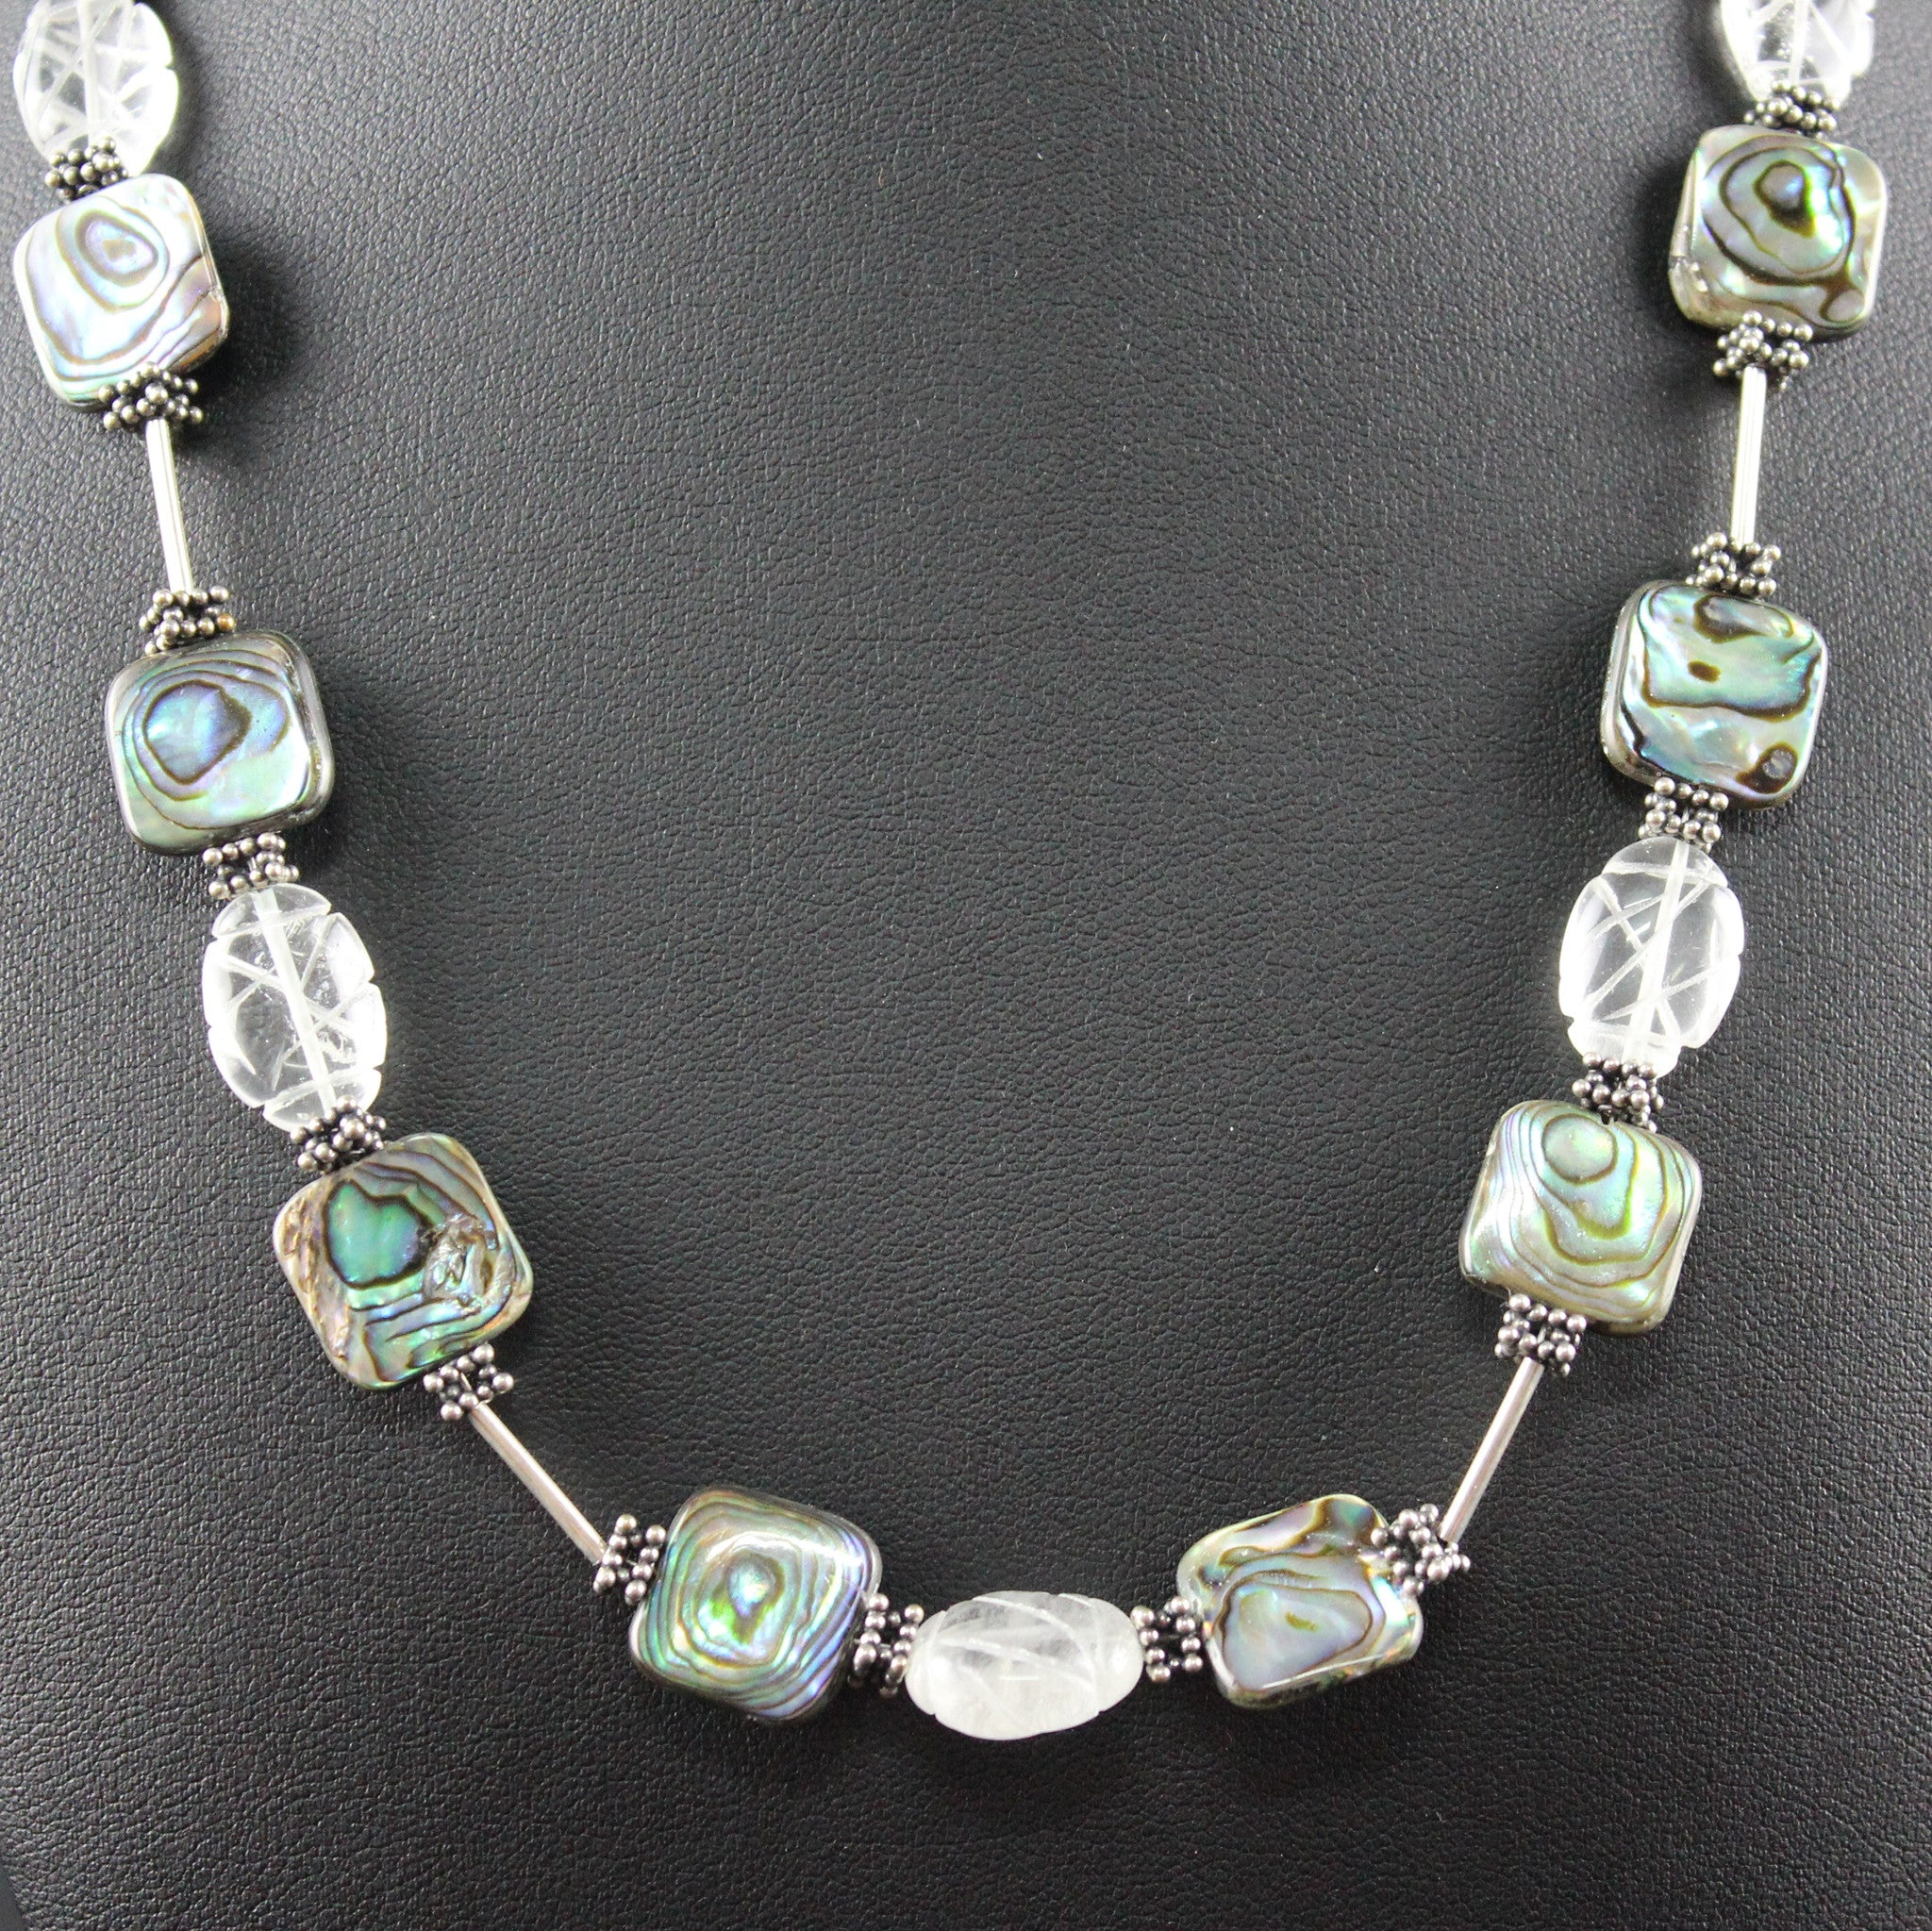 Susan M - Topaz and Paua Shell Necklace